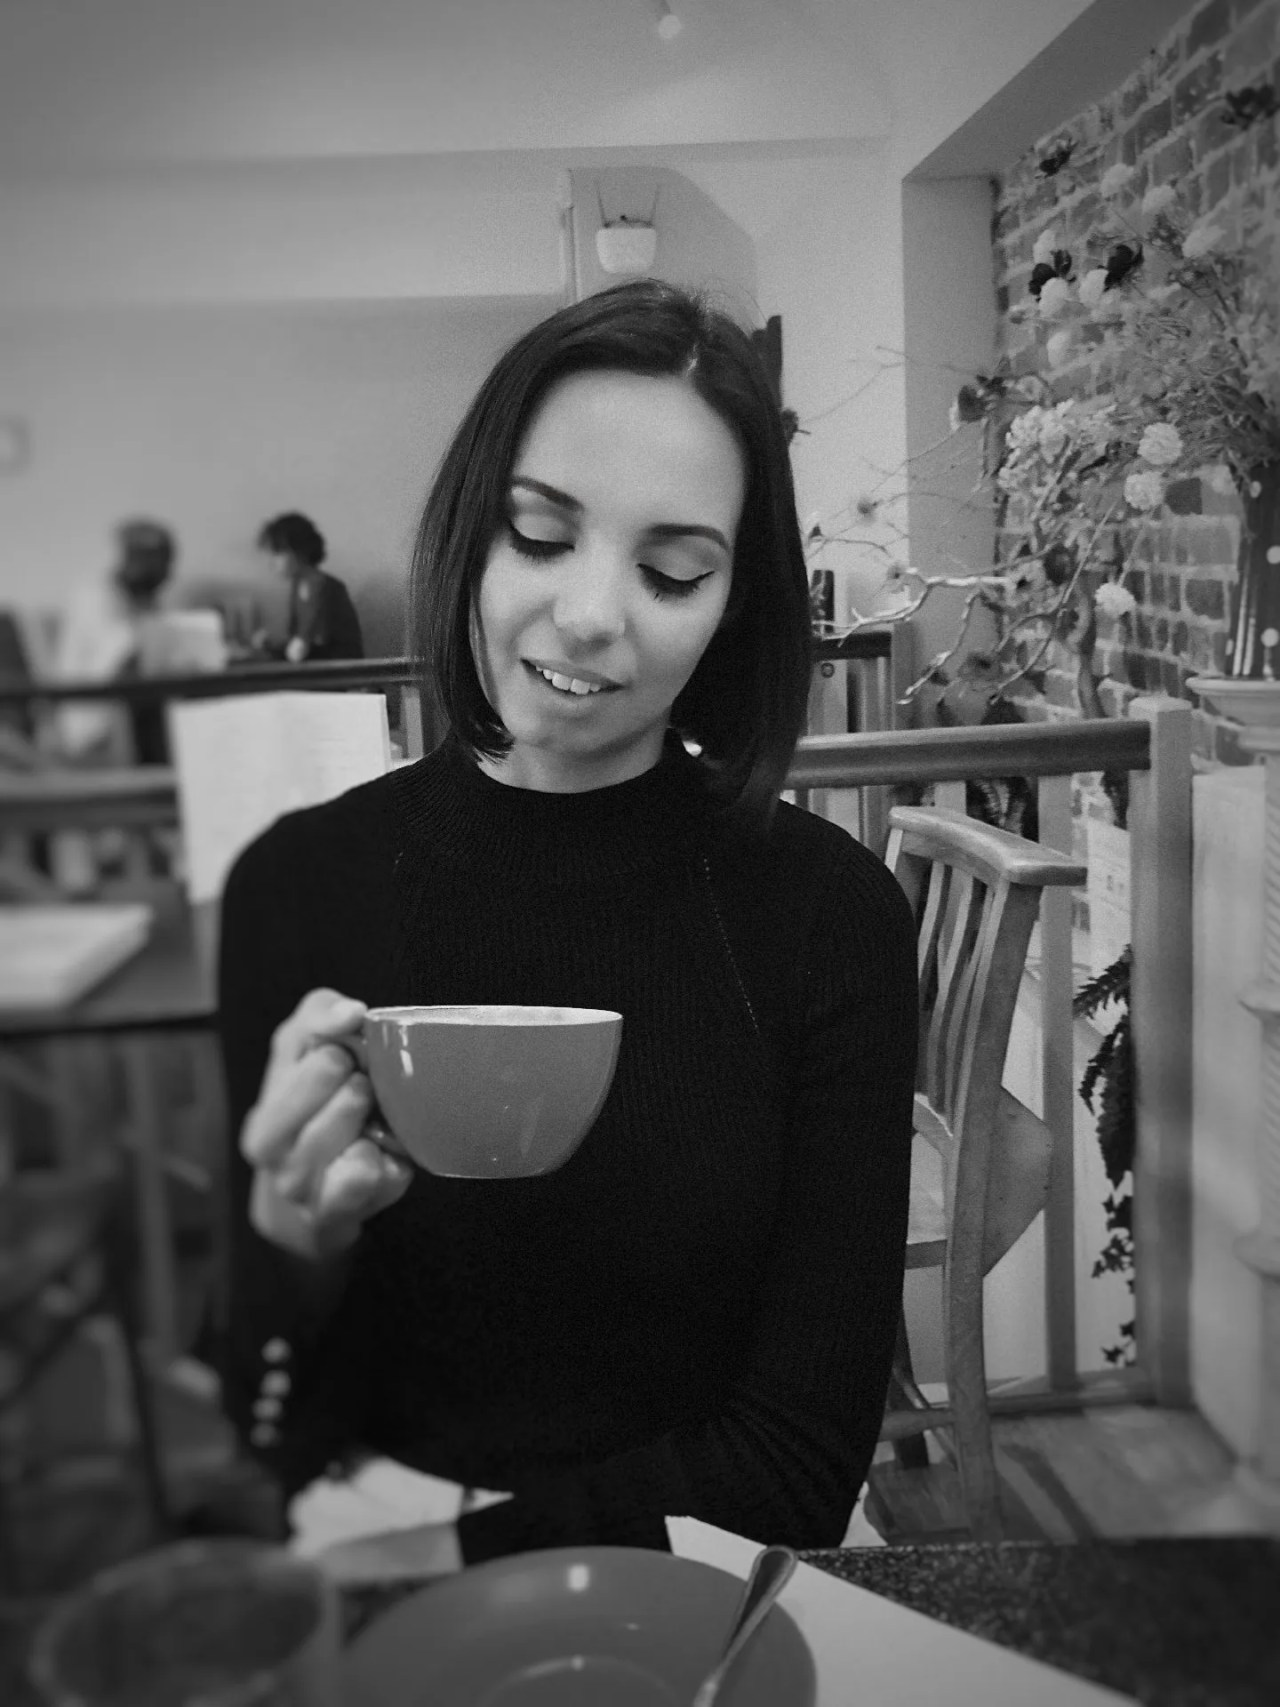 millennials and lattes - coffee in Surrey - UK lifestyle blog - The Style of Laura Jane